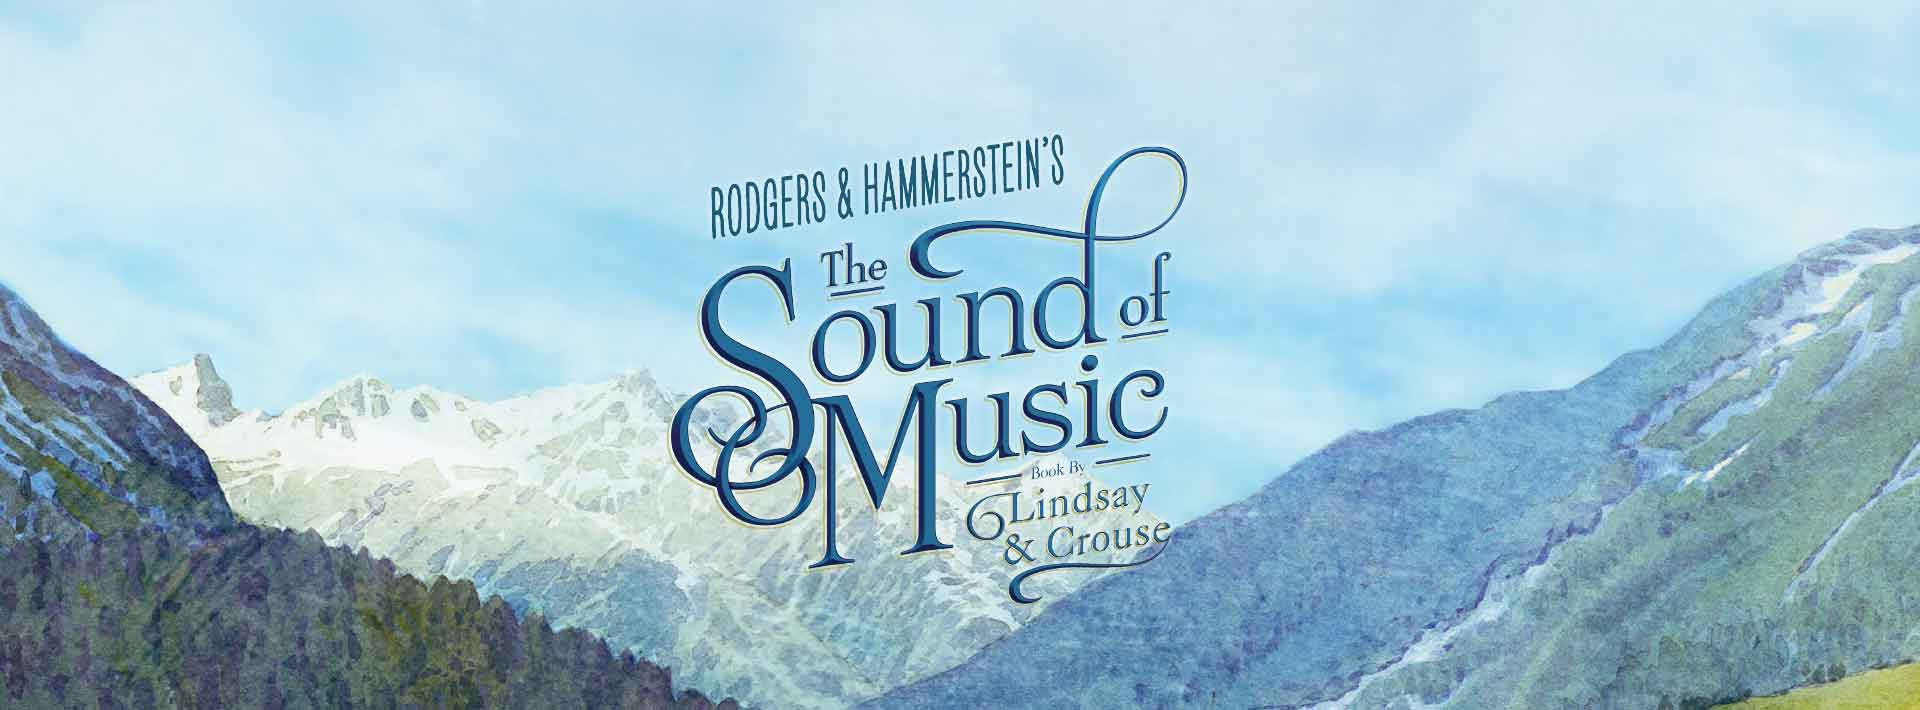 sound-of-music-BCPACollage